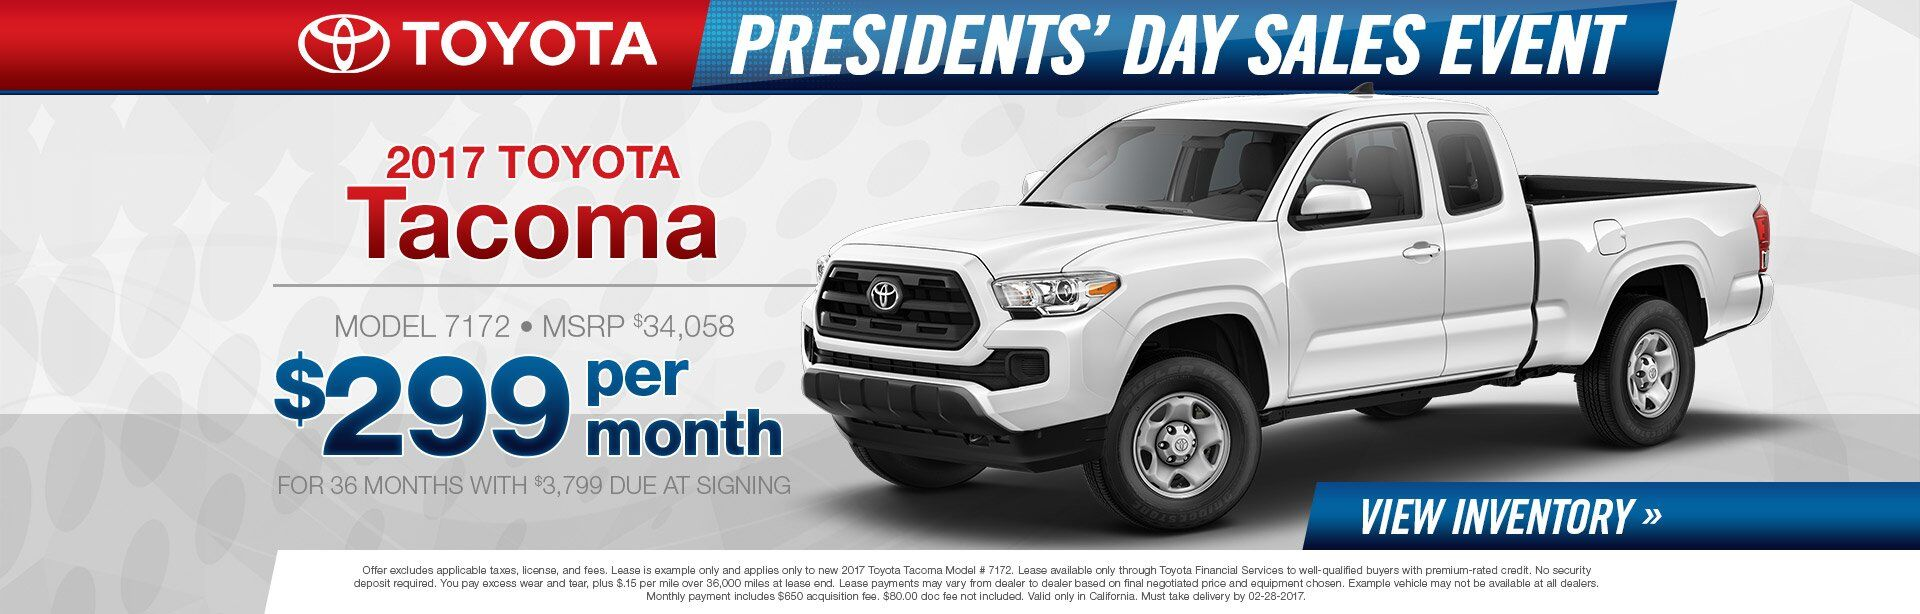 Tacoma Presidents Day Sale